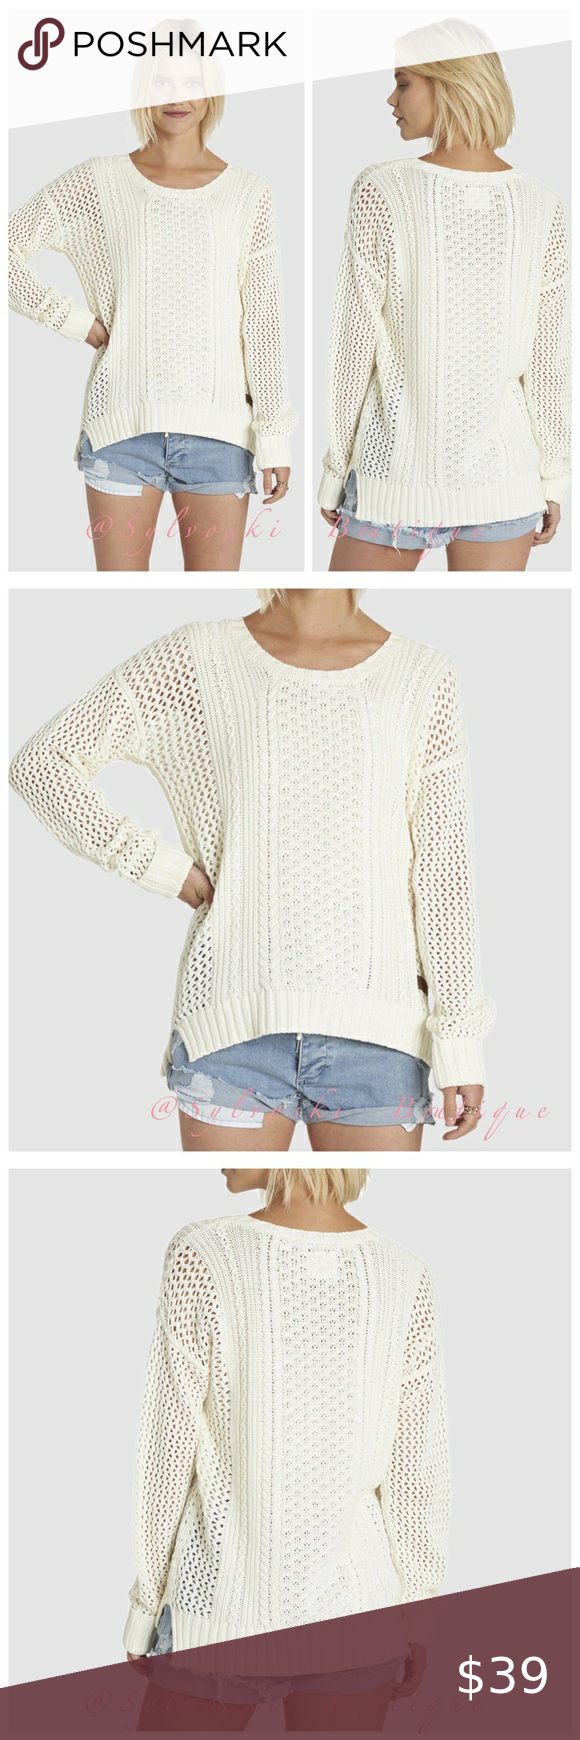 🔥 VOYAGE KNIT SWEATER NWT